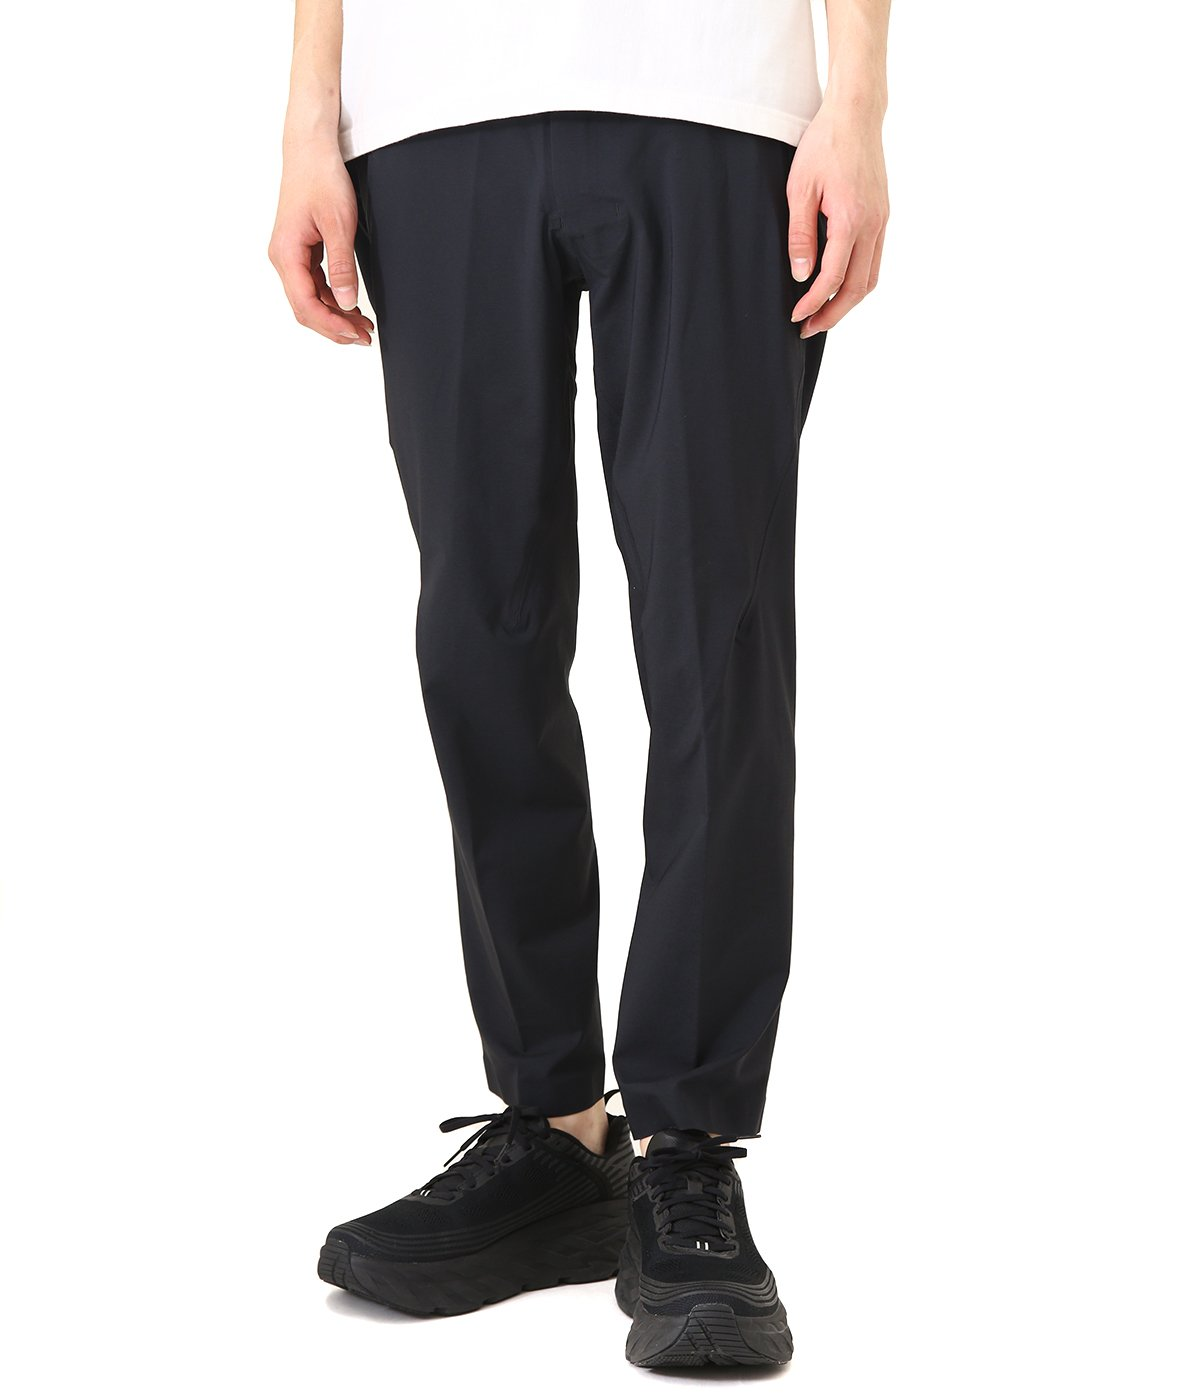 RELAXED FIT TAPERED HIGH STRETCH PANTS